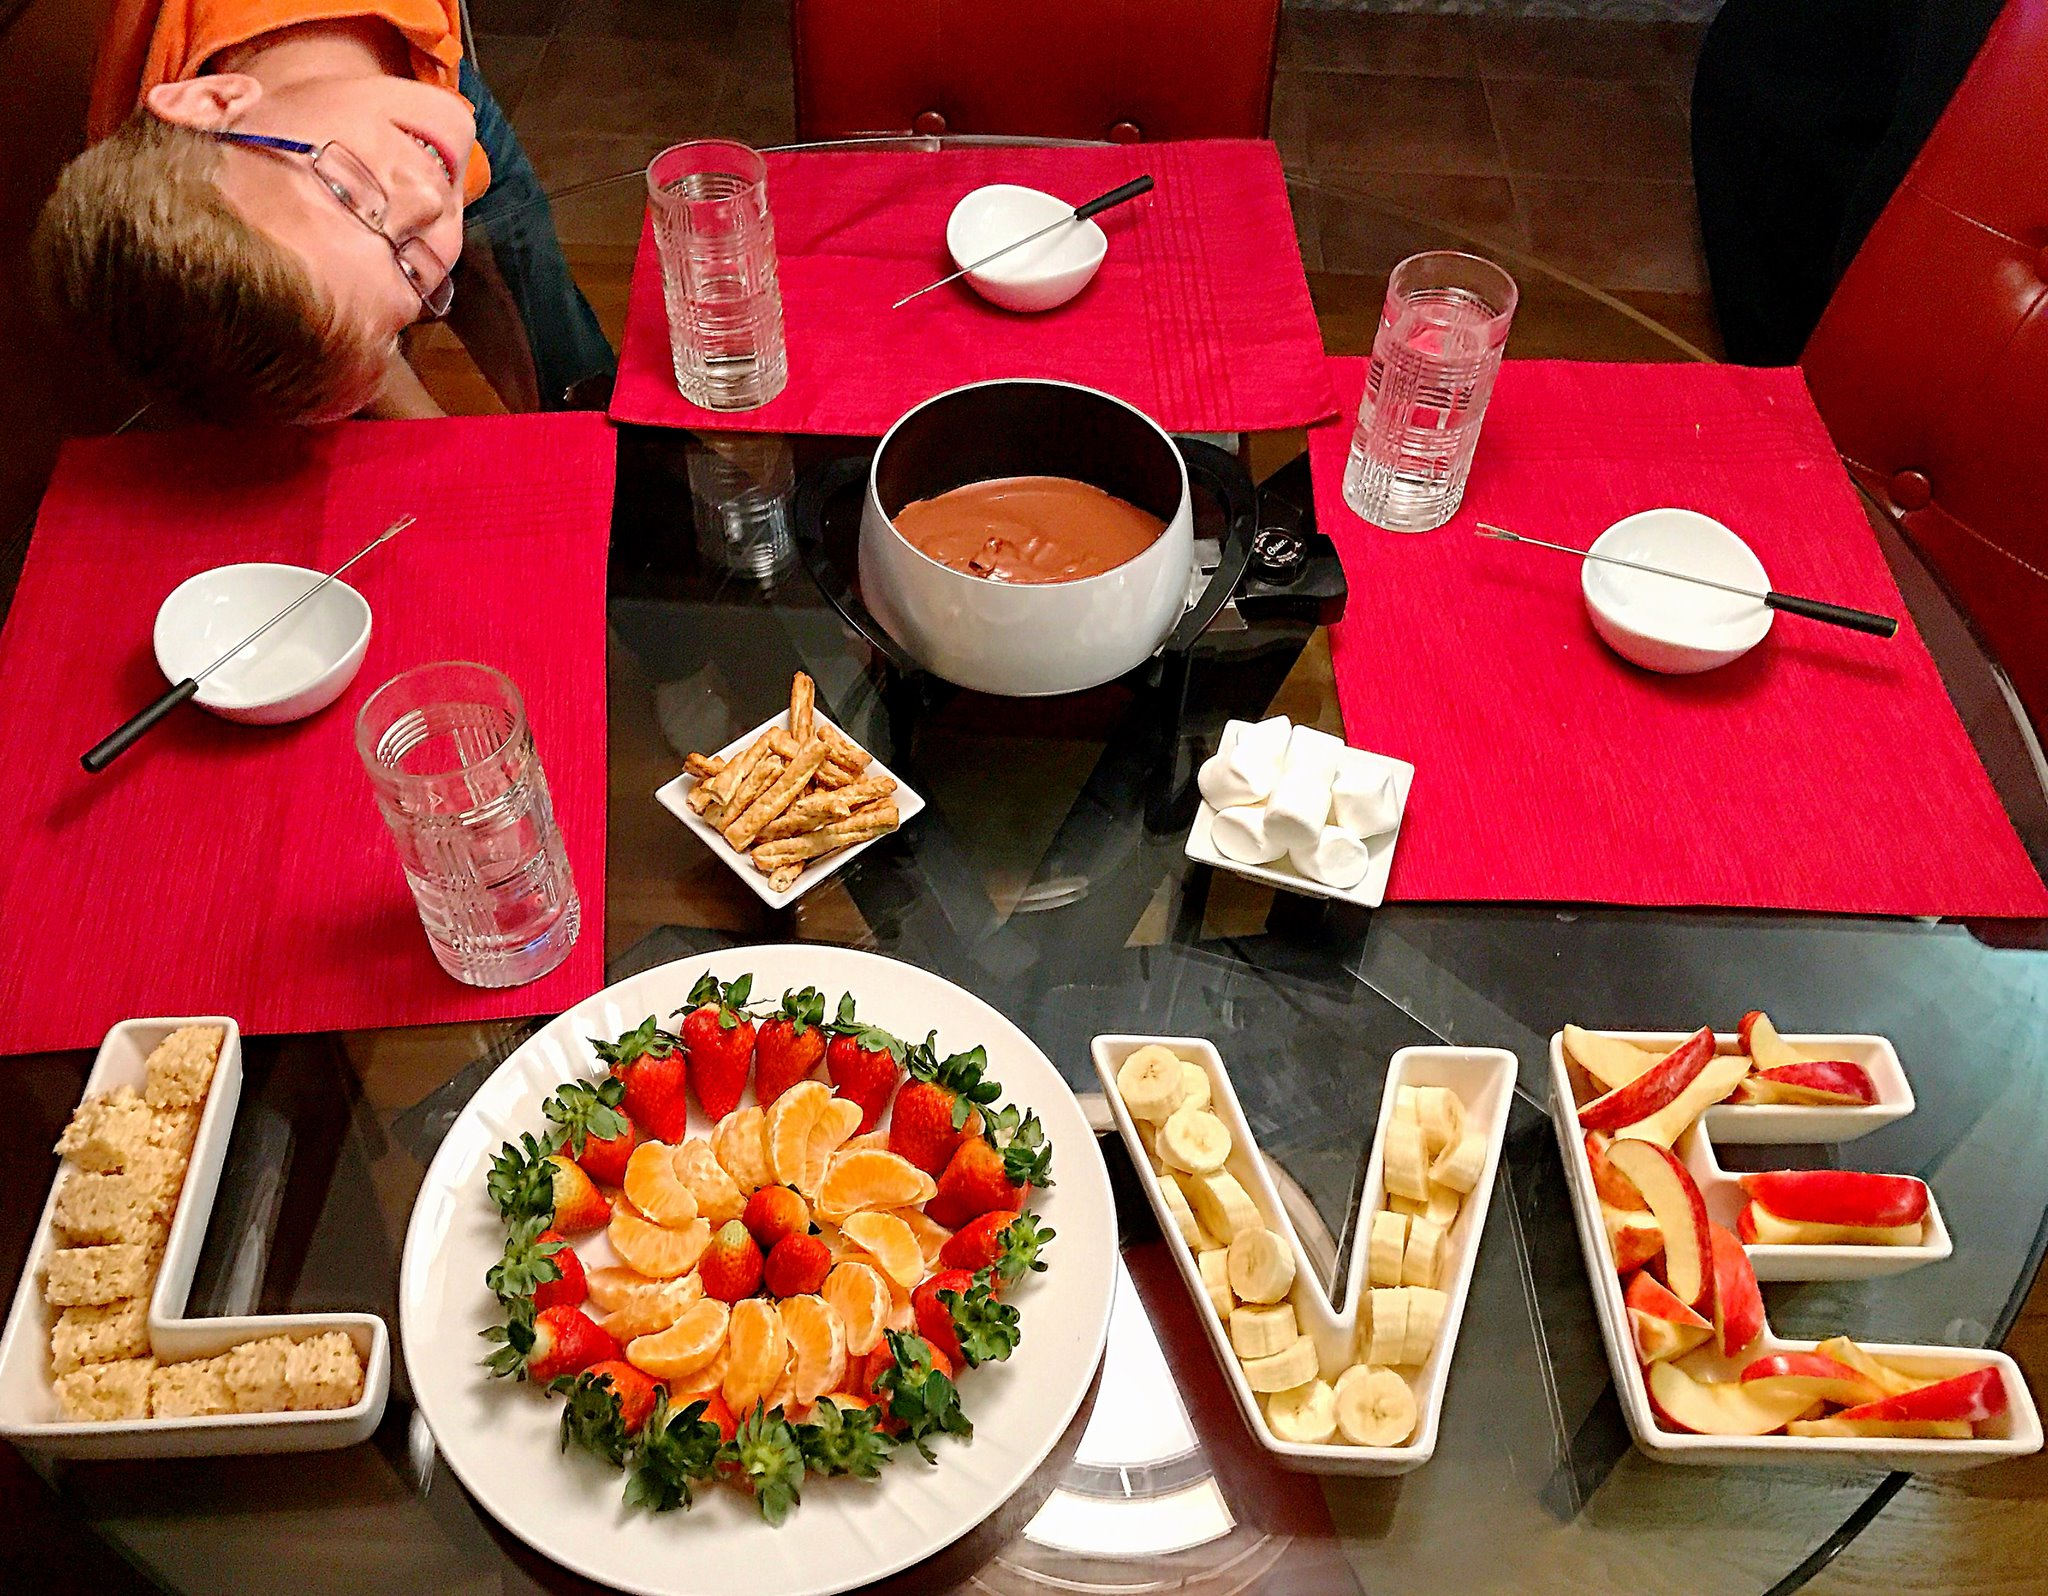 Valentine's Day, Valentine's, Fondue, chocolate, chocolate fondue, fruit, LOVE, fruit for fondue